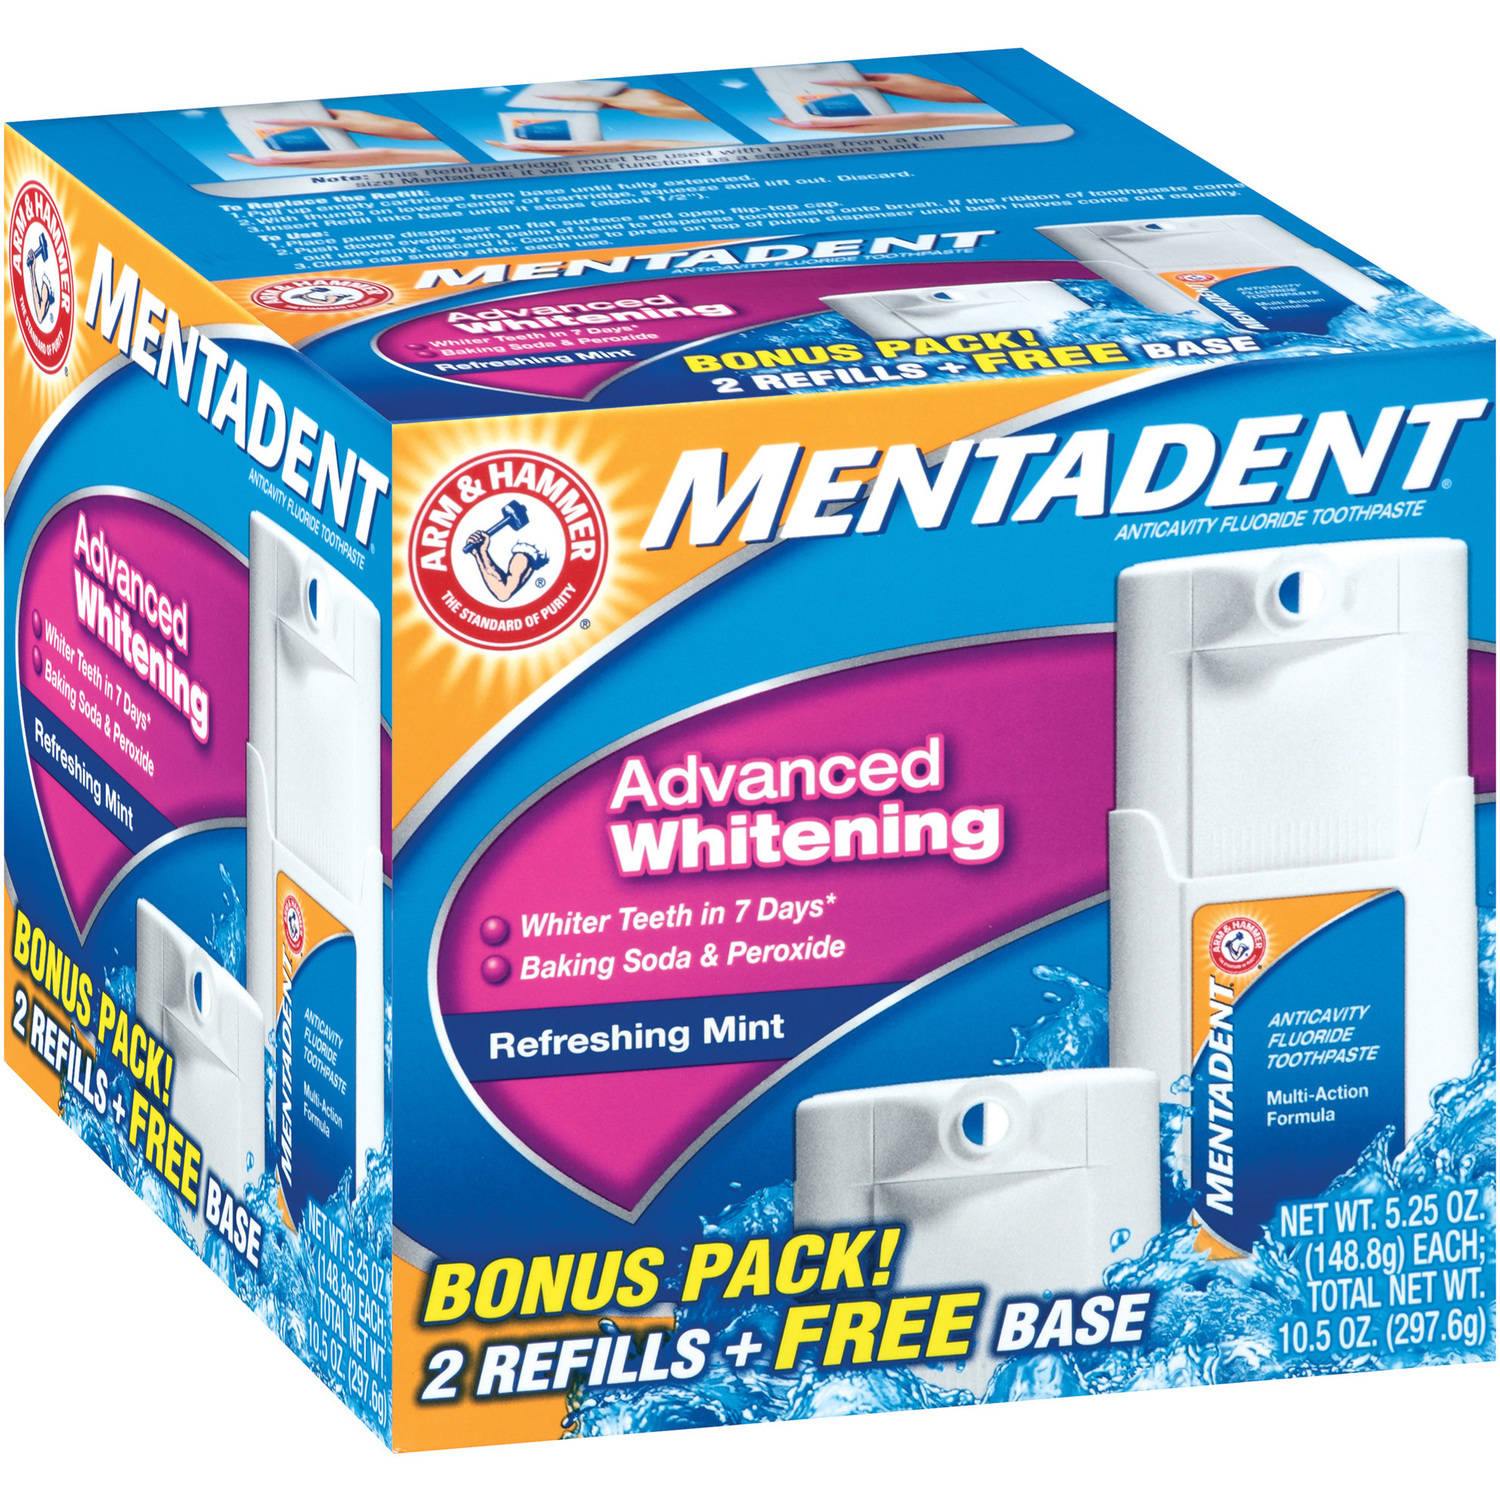 Arm & Hammer Mentadent Advanced Whitening Refreshing Mint Toothpaste, 10.5 oz